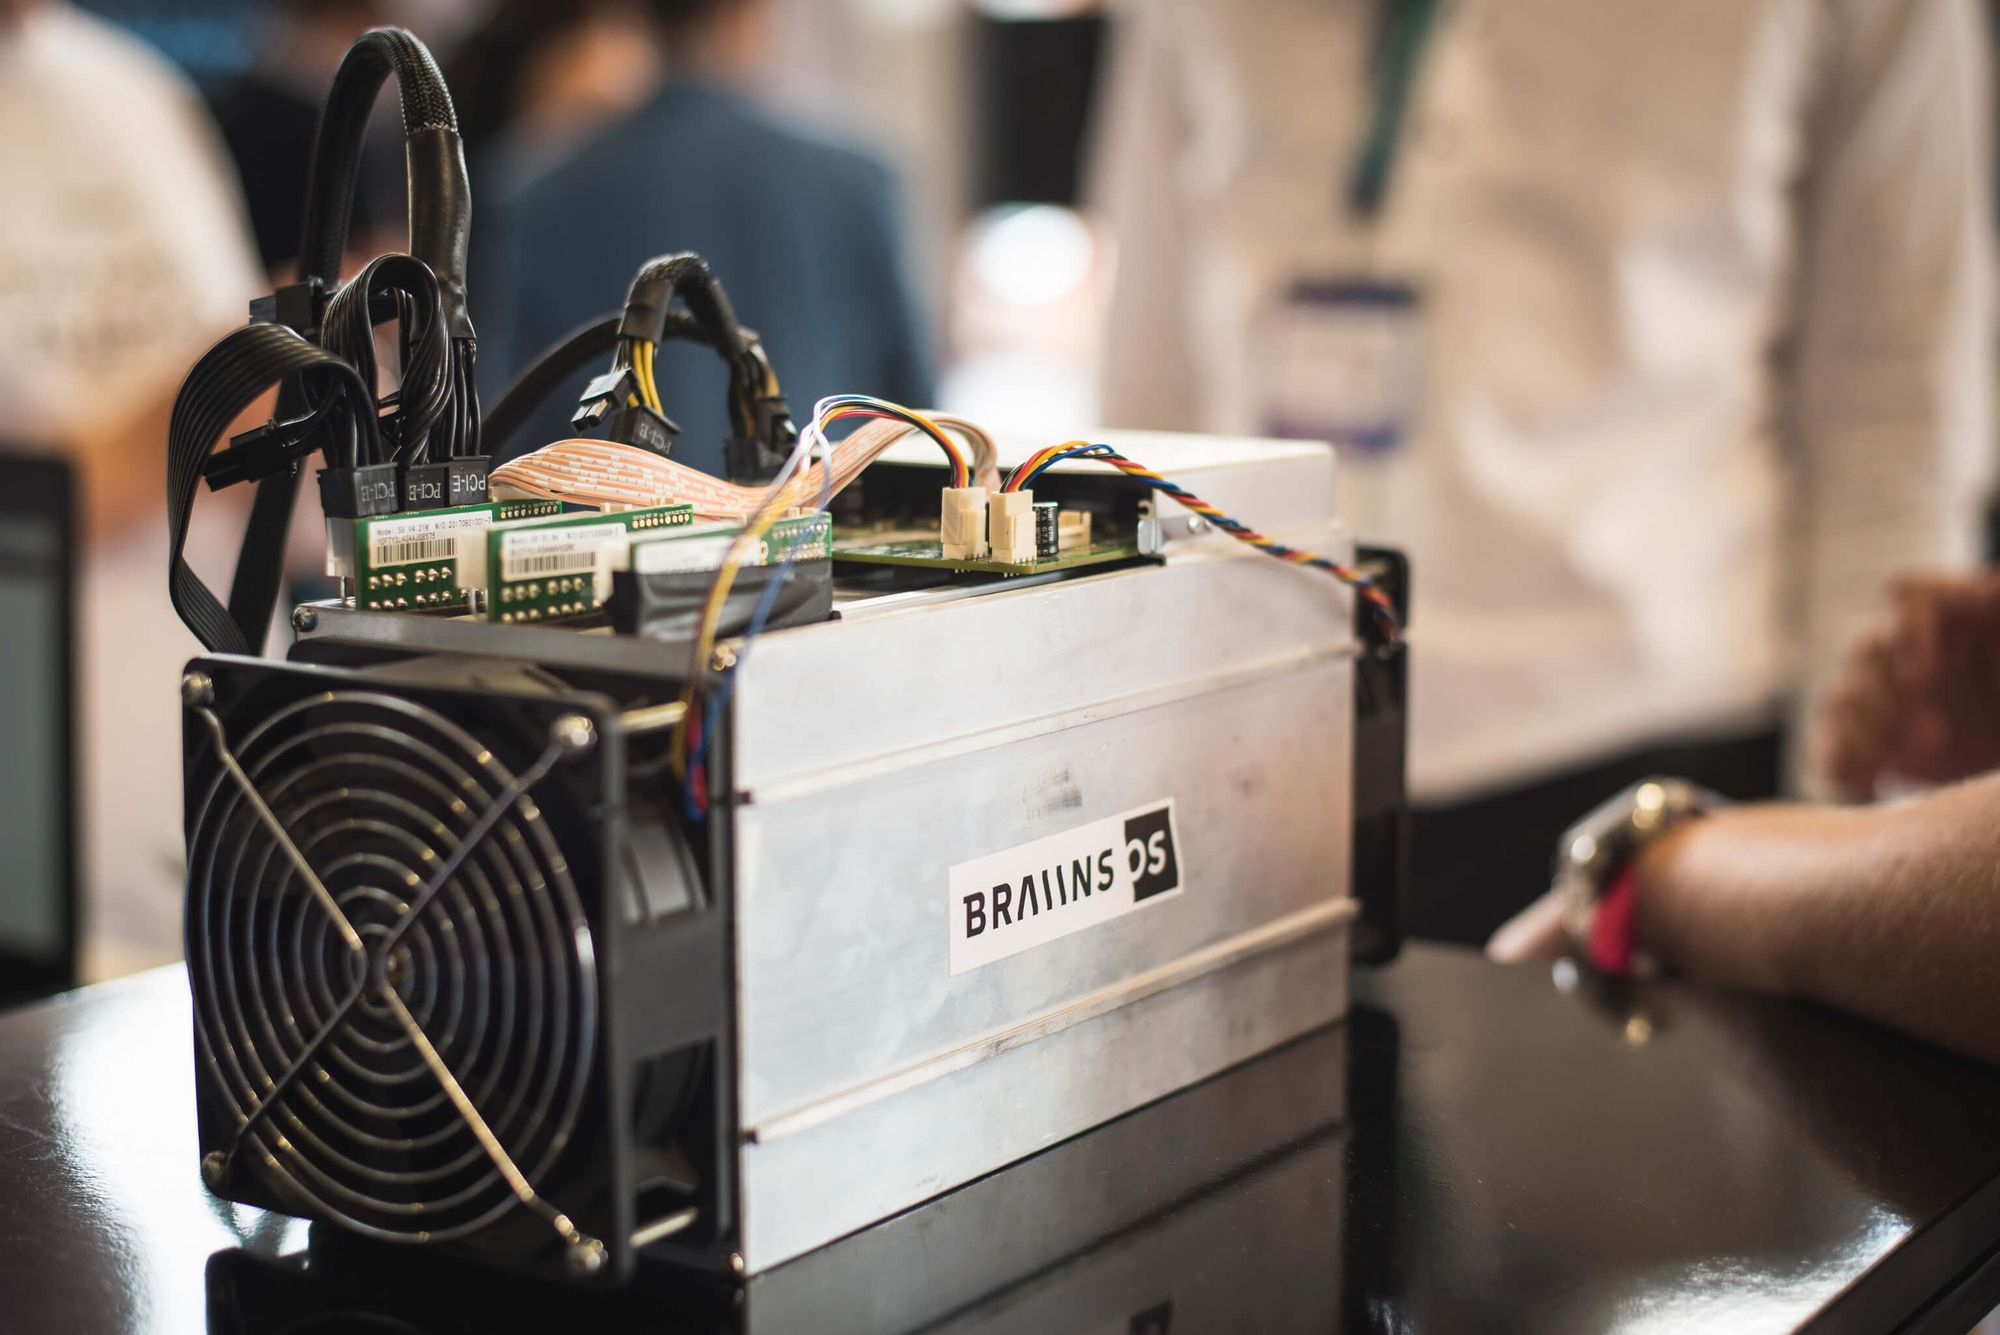 A single Antminer S9, manufactured by Bitmain, is small enough to fit in one's home. By Braiins.